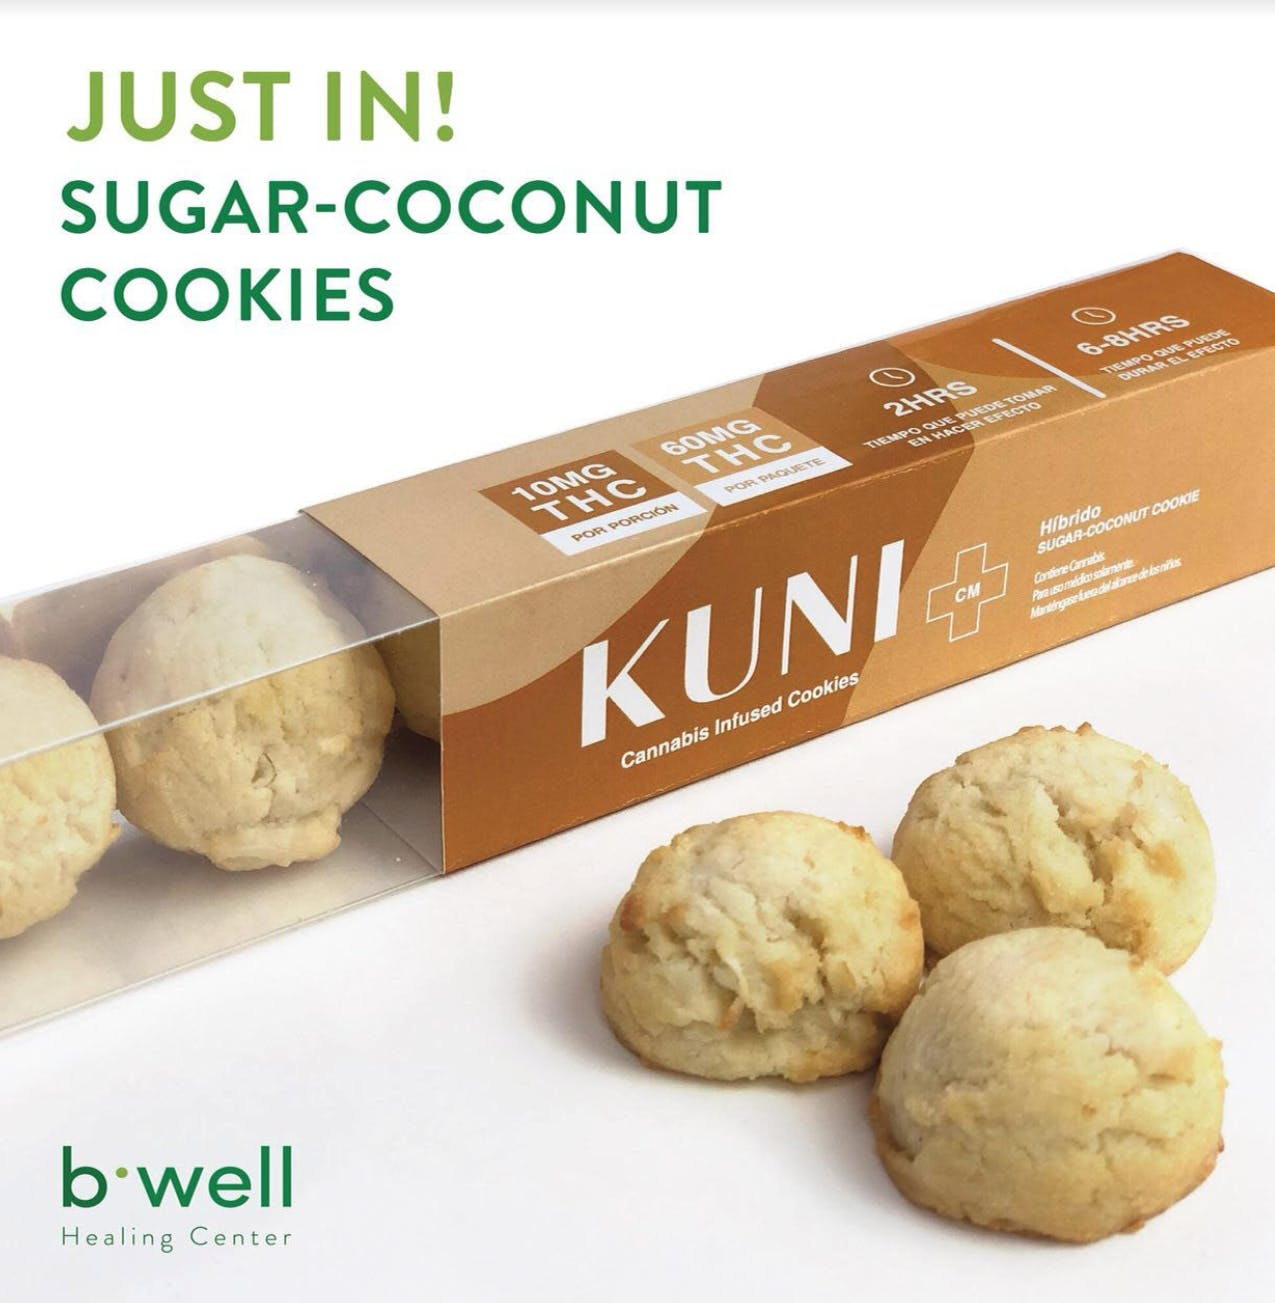 marijuana-dispensaries-bwell-healing-center-in-san-juan-kuni-cannabis-infused-sugar-cookies-60mg-6-pieces